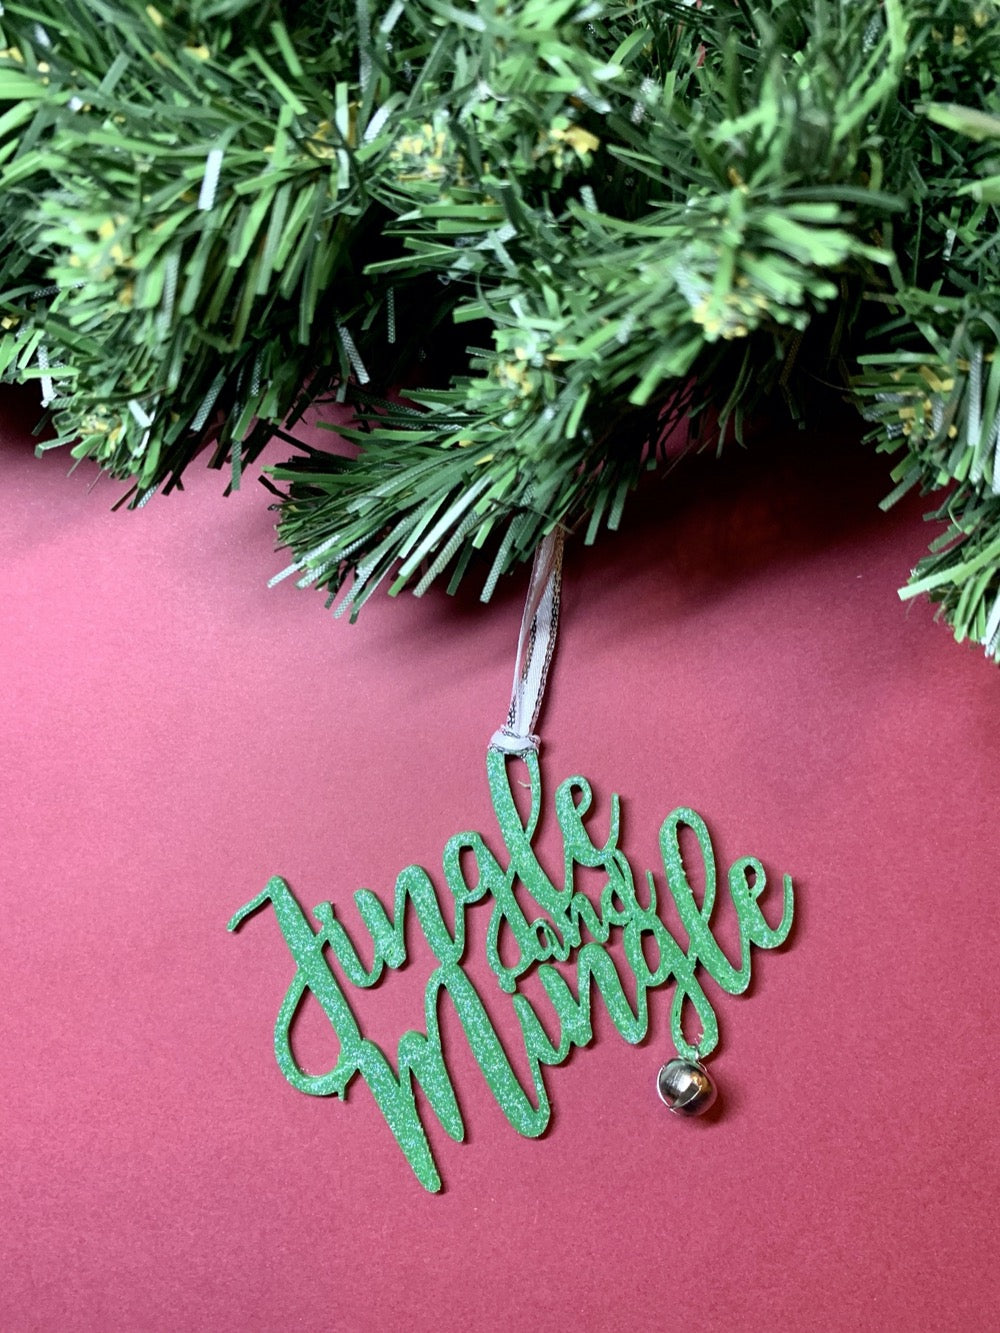 On a bright red background and hanging from a green wreath is a 3D printed R+D ornament. It is a cursive text with a jingle bell and covered in glitter to make it shimmer and shine in the light. This ornament reads, Jingle and Mingle.